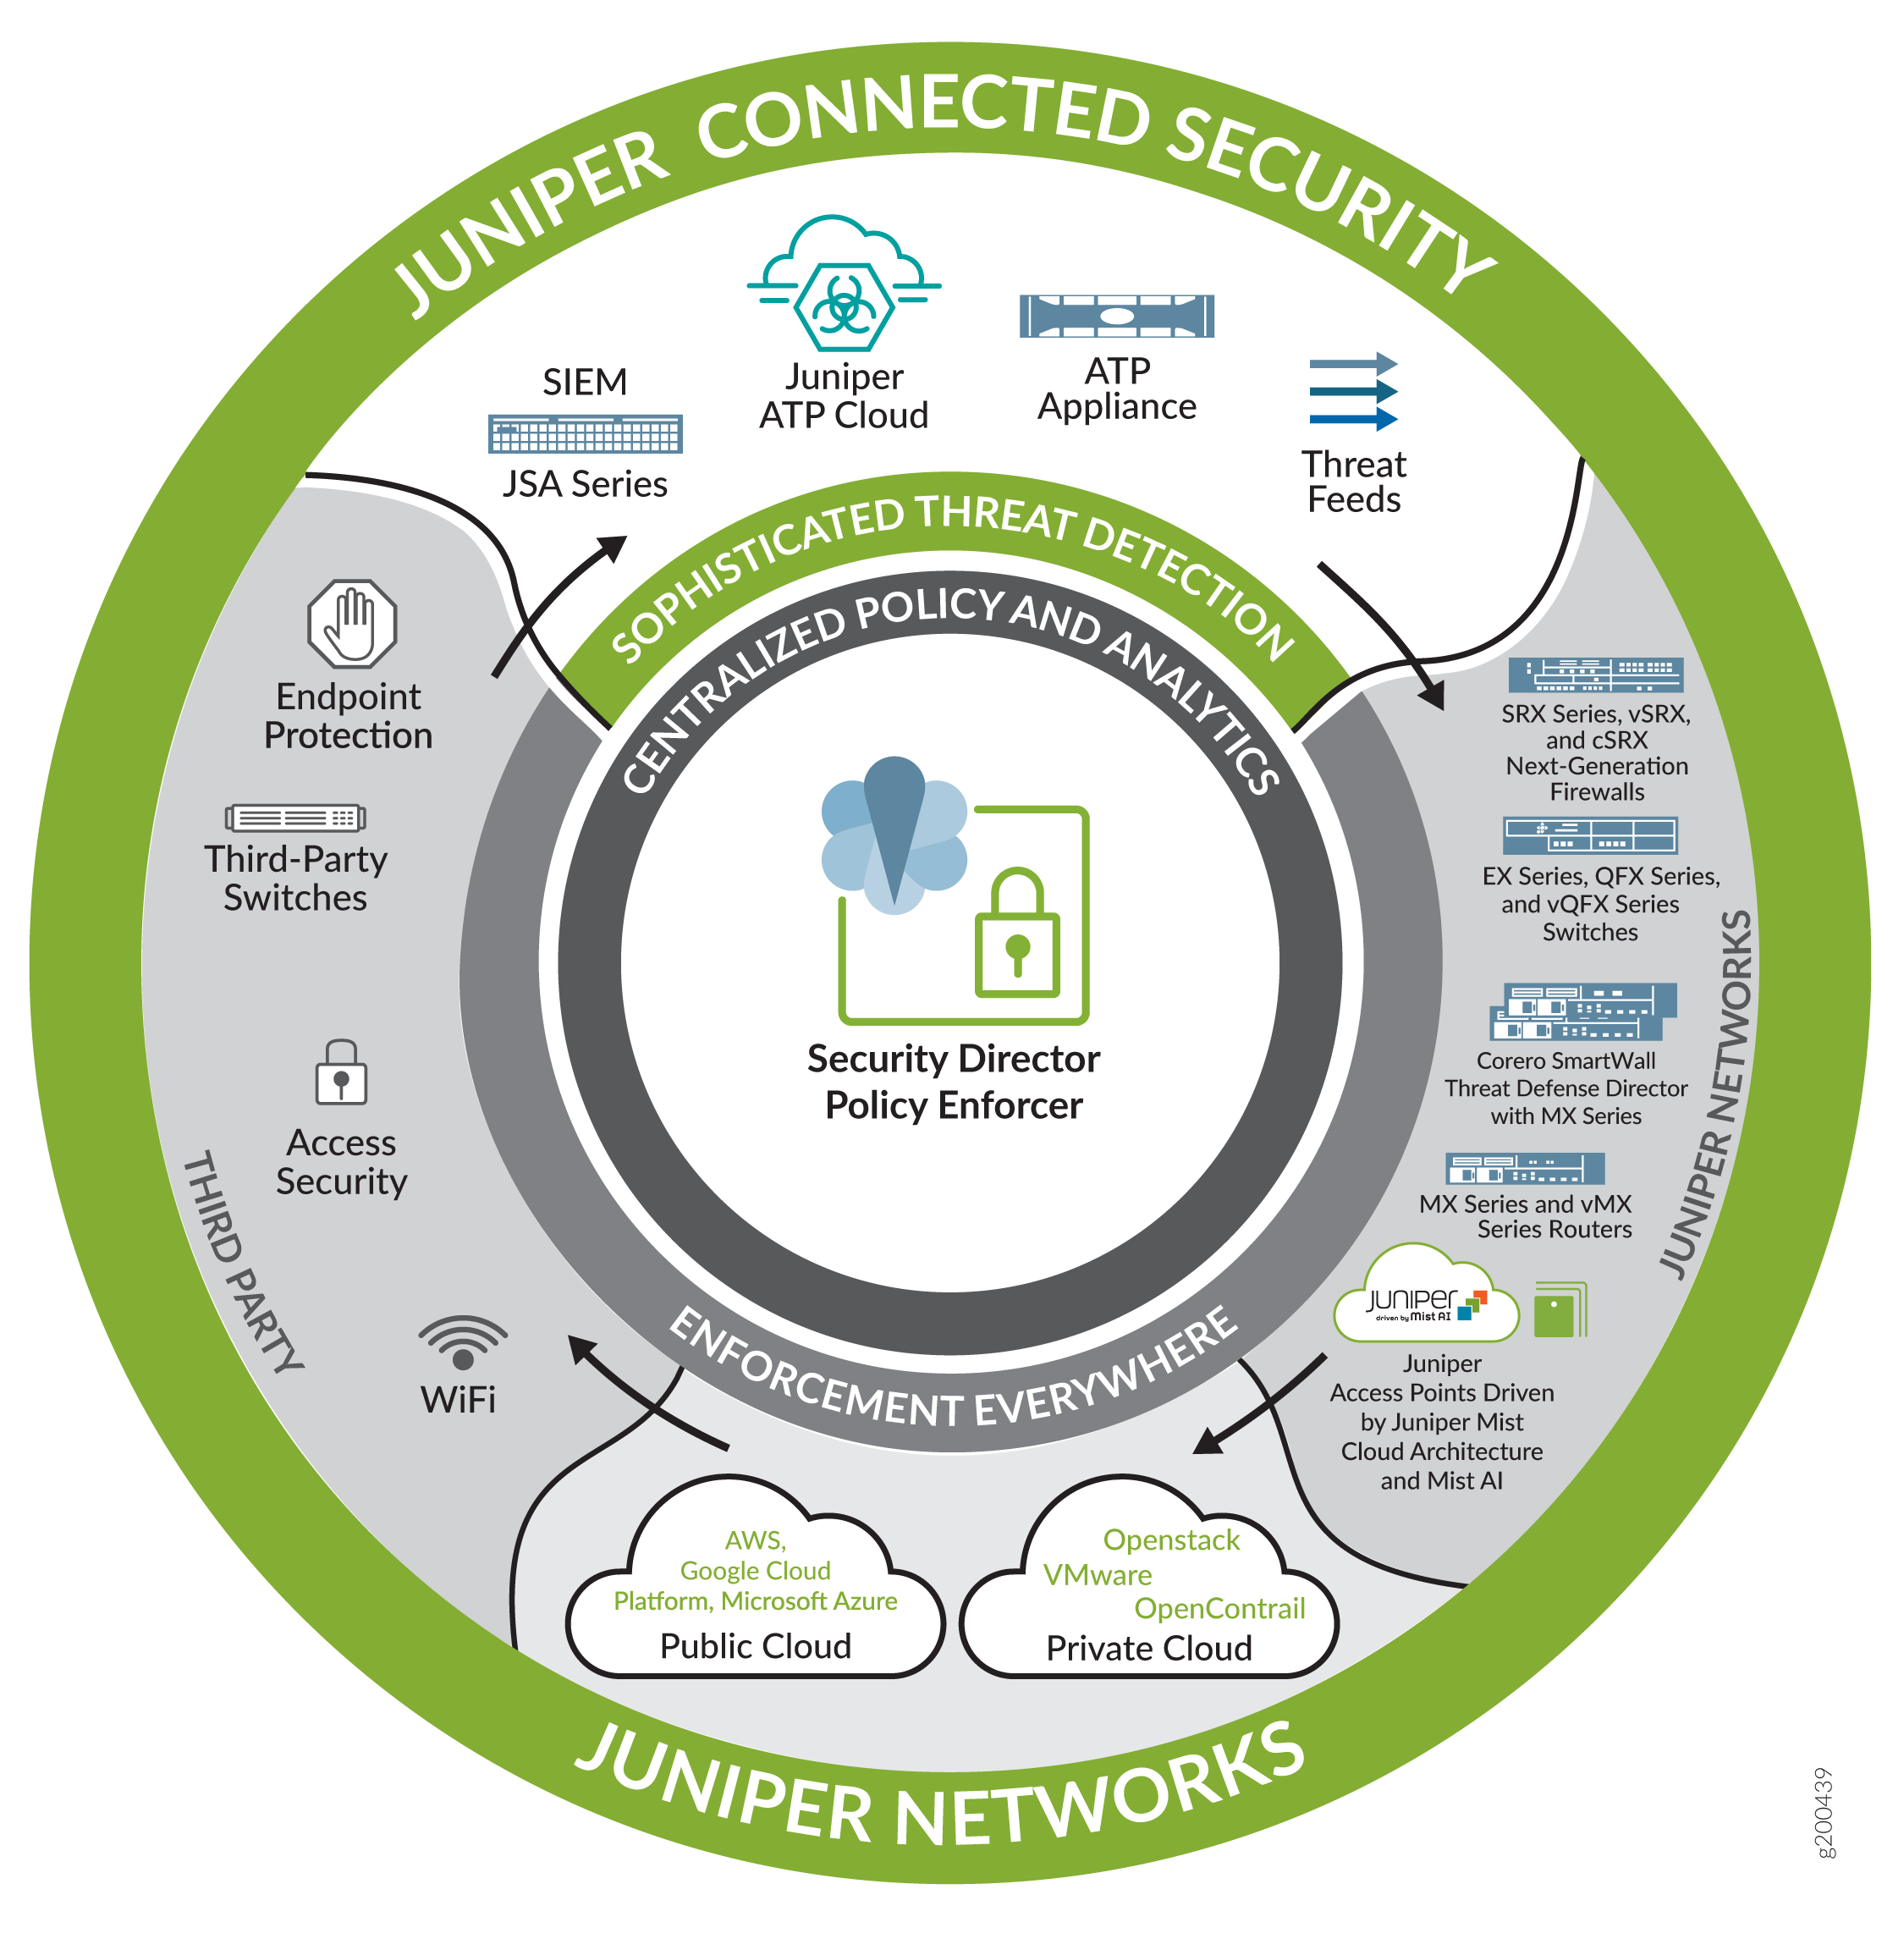 Juniper Connected Security